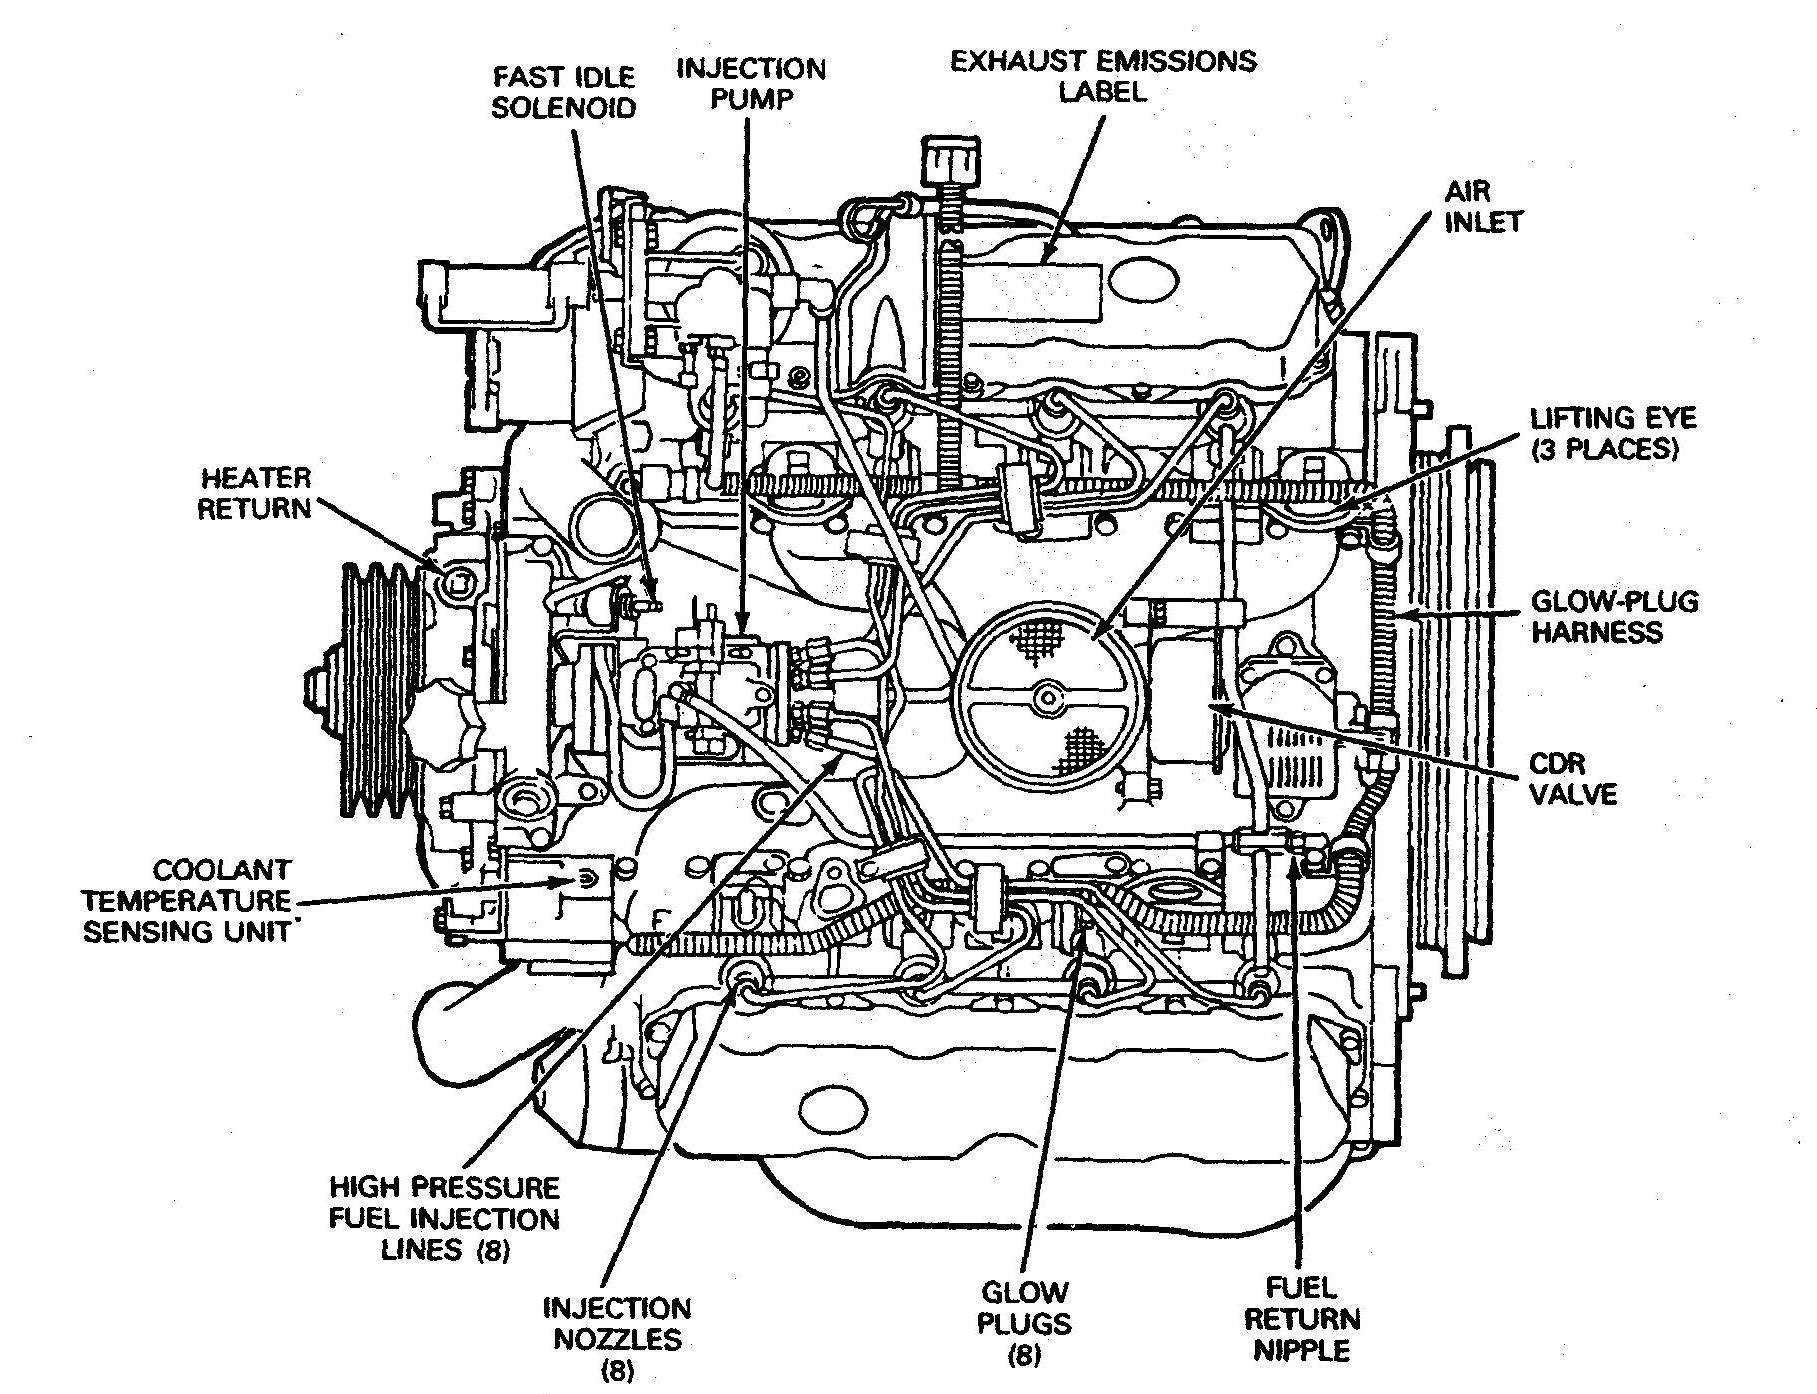 Lt1 Engine Wiring Library Big Buddy Heater Diagram Exploded Ford V6 3 7 Diagrams Instructions Of